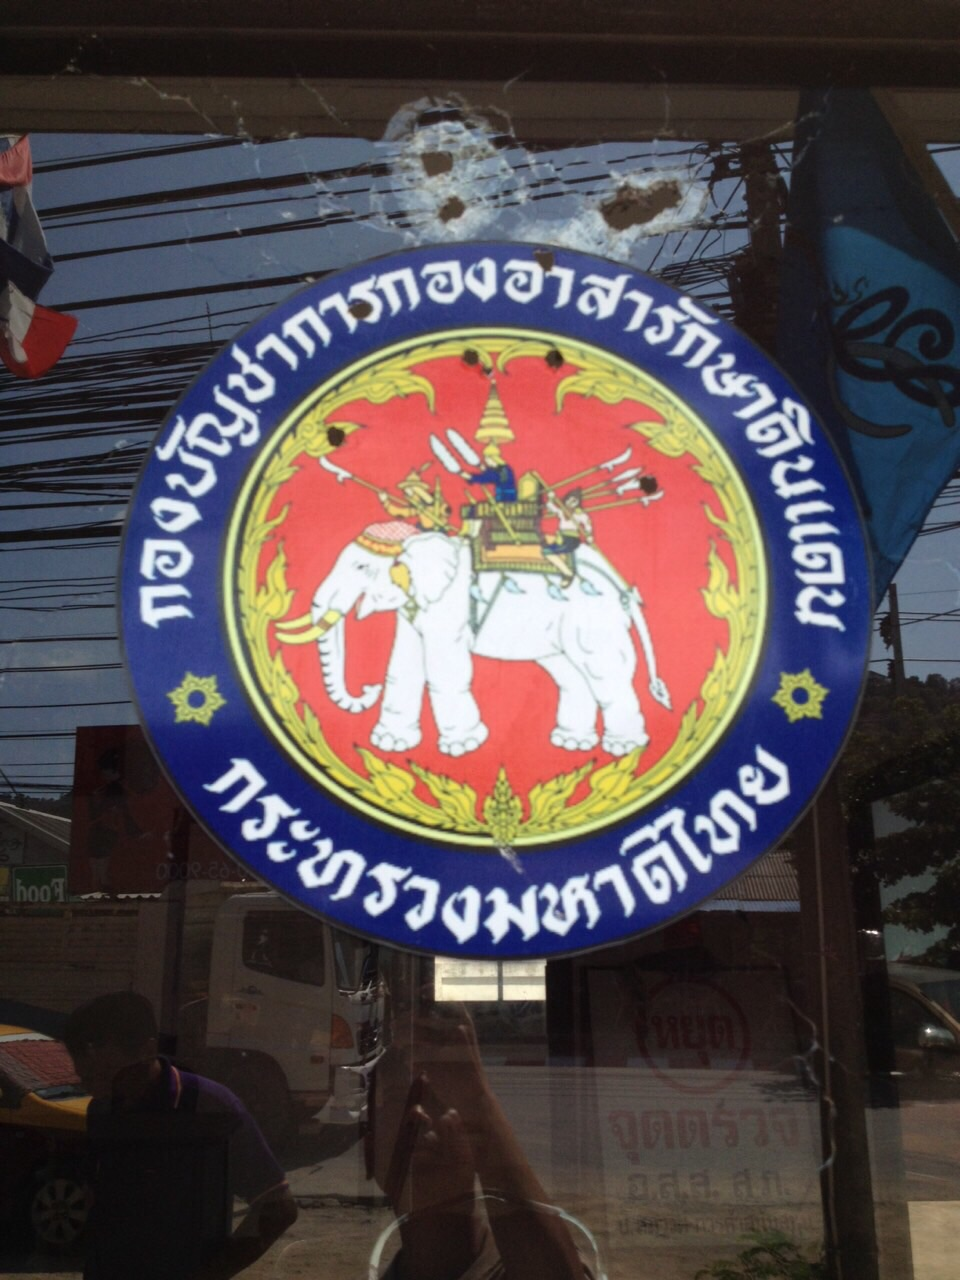 Shots fired into the Amper guard's office in Samui | Samui Times